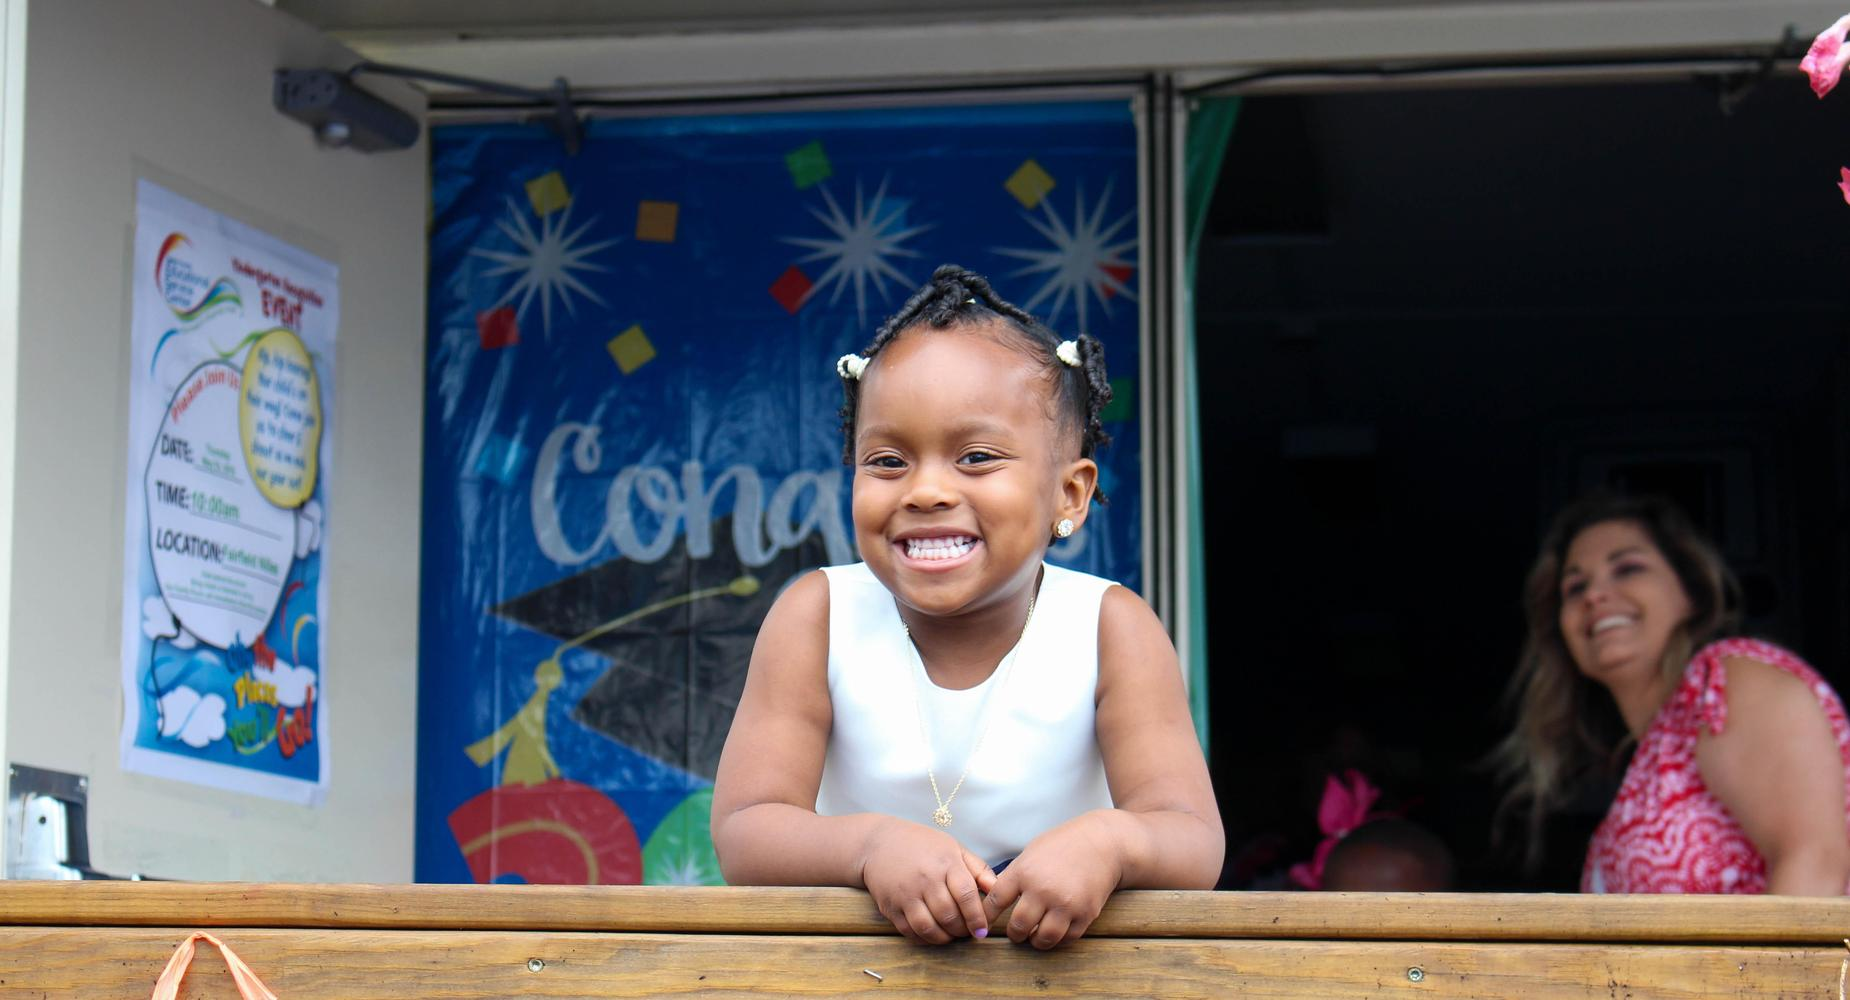 Fairfield Head Start student celebrates her graduation with a smile